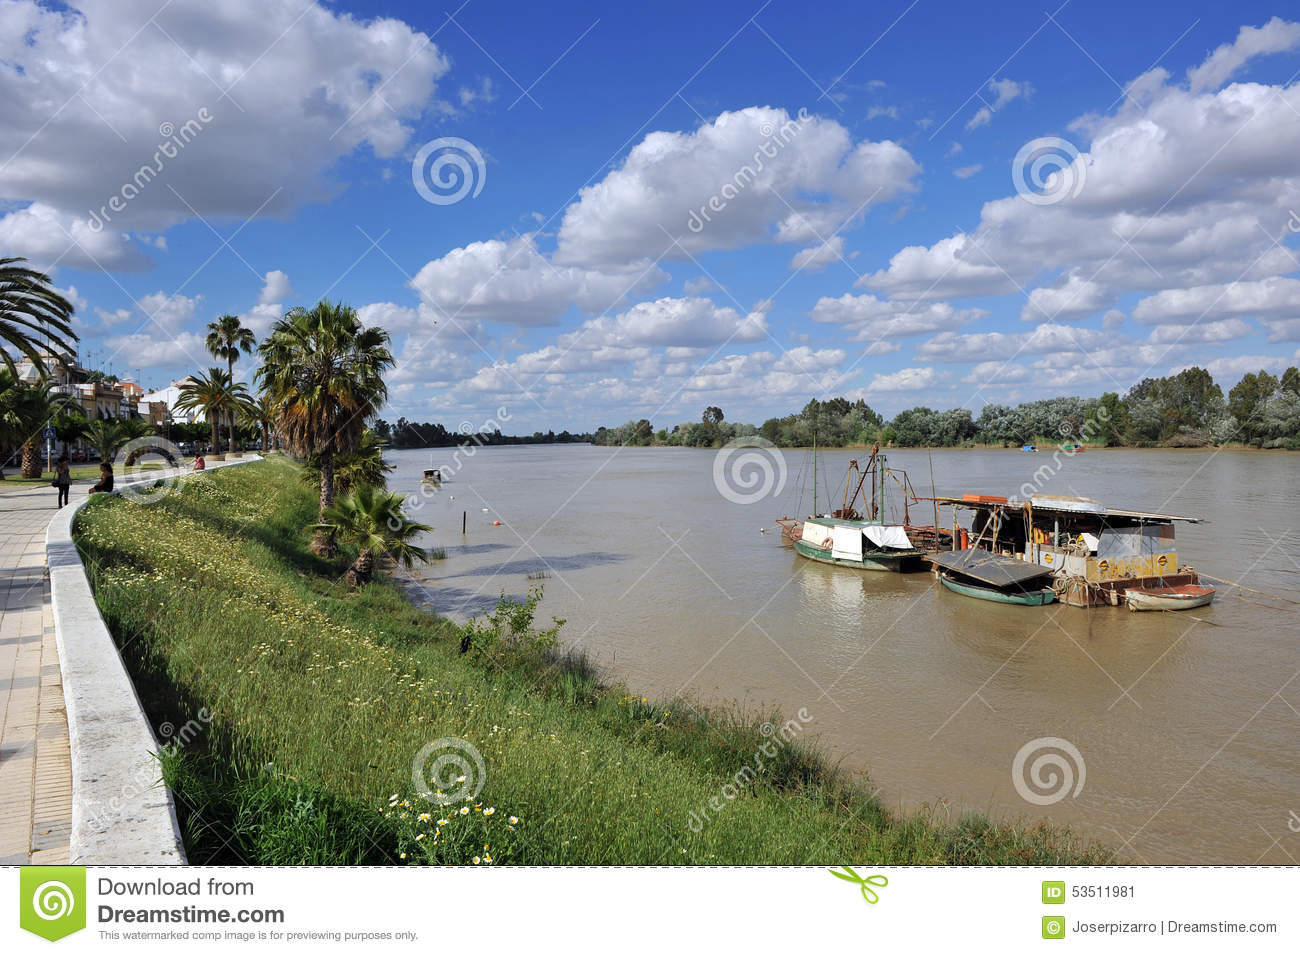 Little boats on the Guadalquivir River as it passes through Coria del Rio, Seville province, Andalusia, Spain